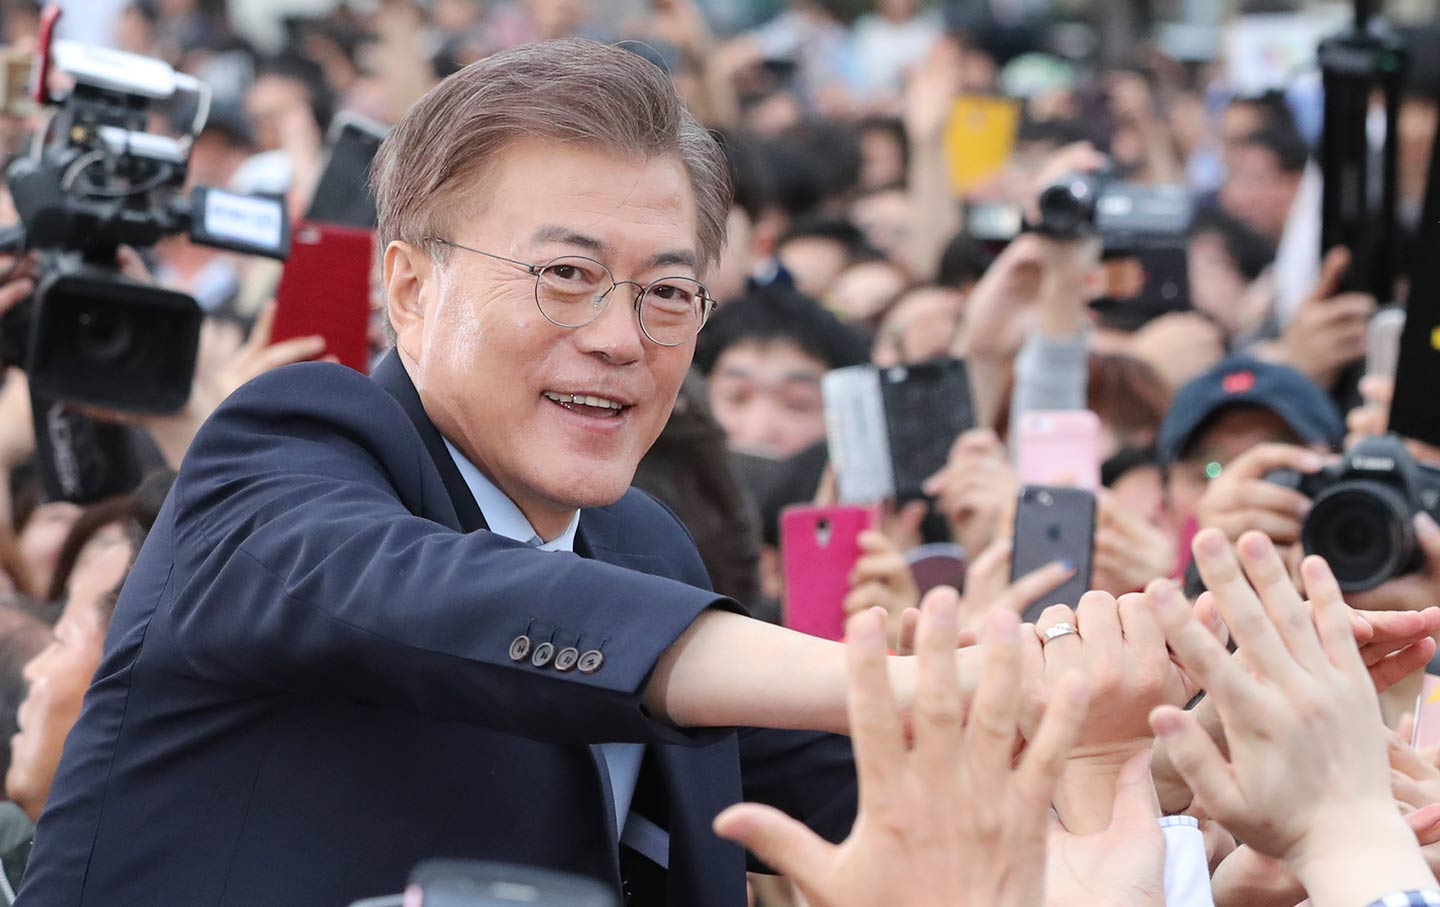 South korean president moons gamble for peace with north korea has south korean president moon jae in is greeted by his supporters in goyang may 4 2017 ap photo lee jin man ccuart Choice Image